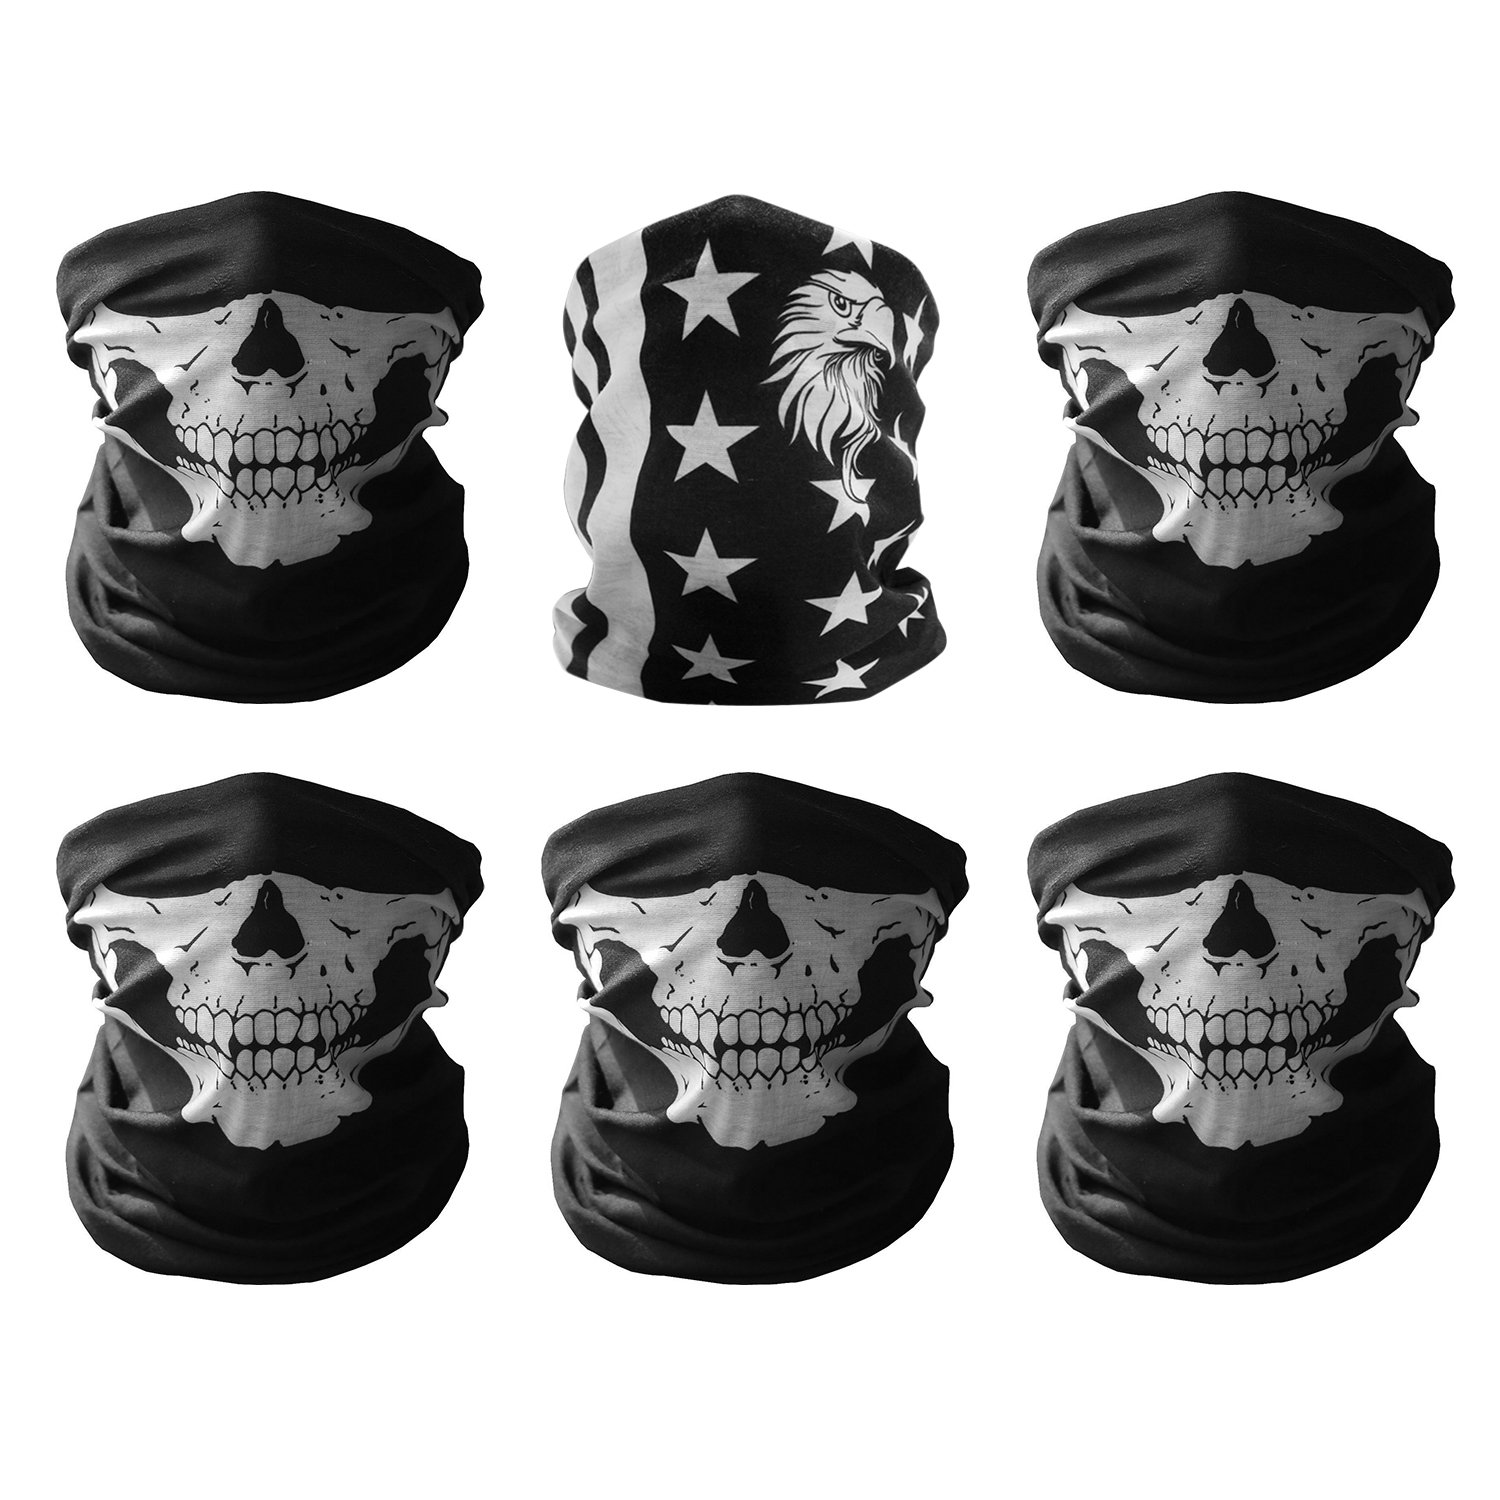 GAMPRO Universal Breathable Seamless Tube Skull Face Mask, Dust-proof Motorcycle Bicycle Bike Face Mask for Cycling, Hiking, Camping, Climbing, Fishing, Hunting, Jogging, Motorcycling (5Black&1Flag)